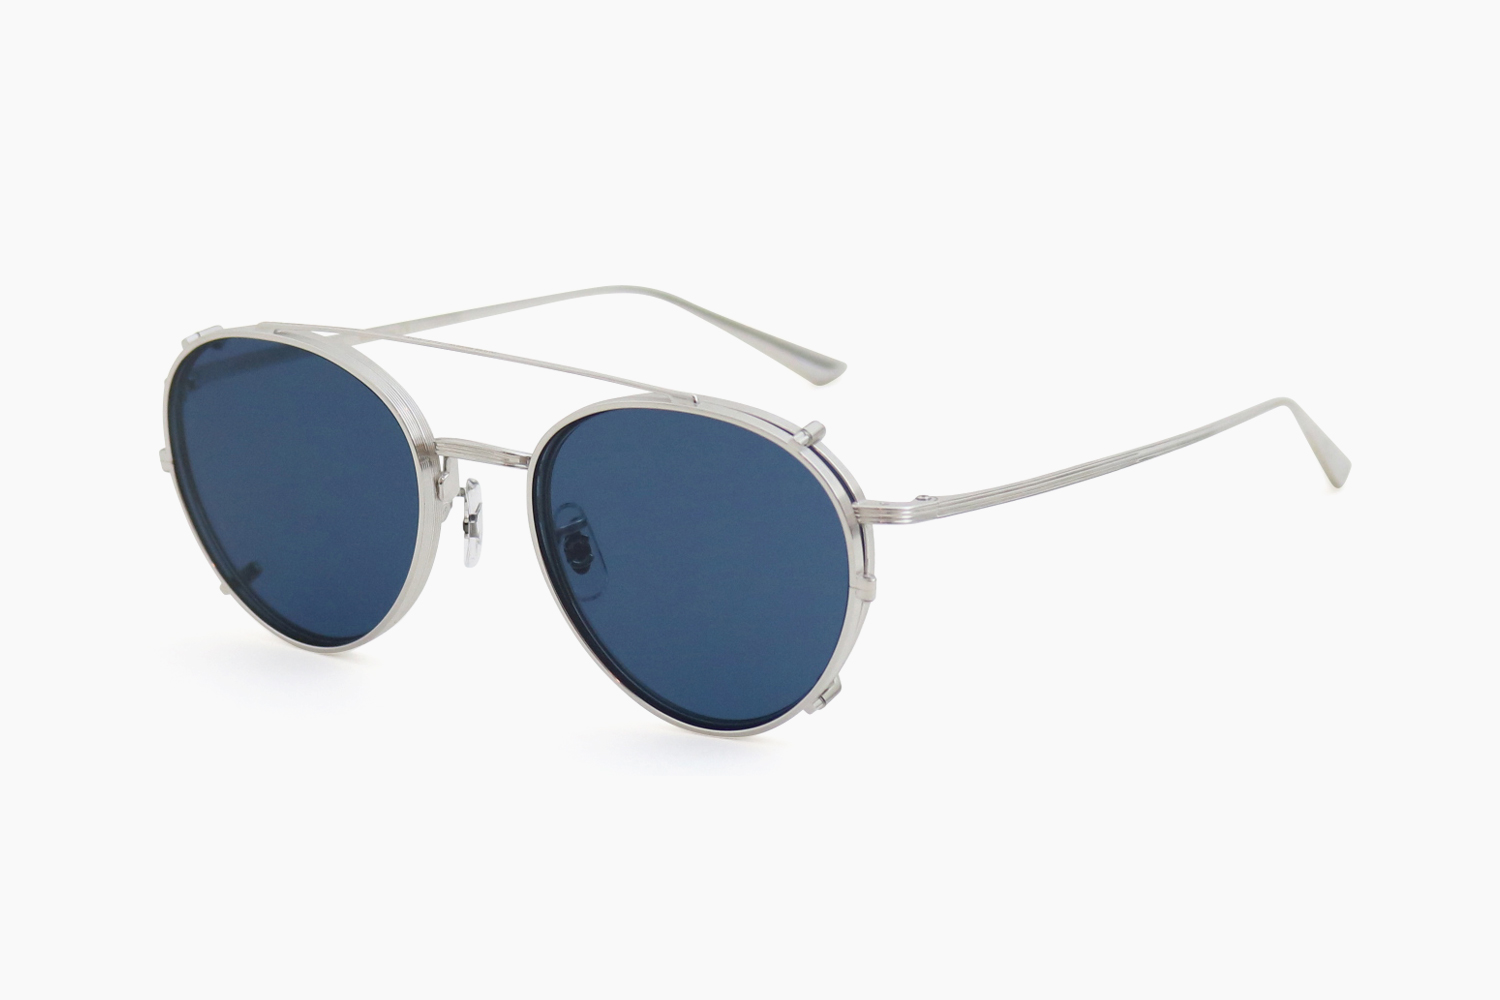 BROWNSTONE CLIP - 503680 Silver|OLIVER PEOPLES